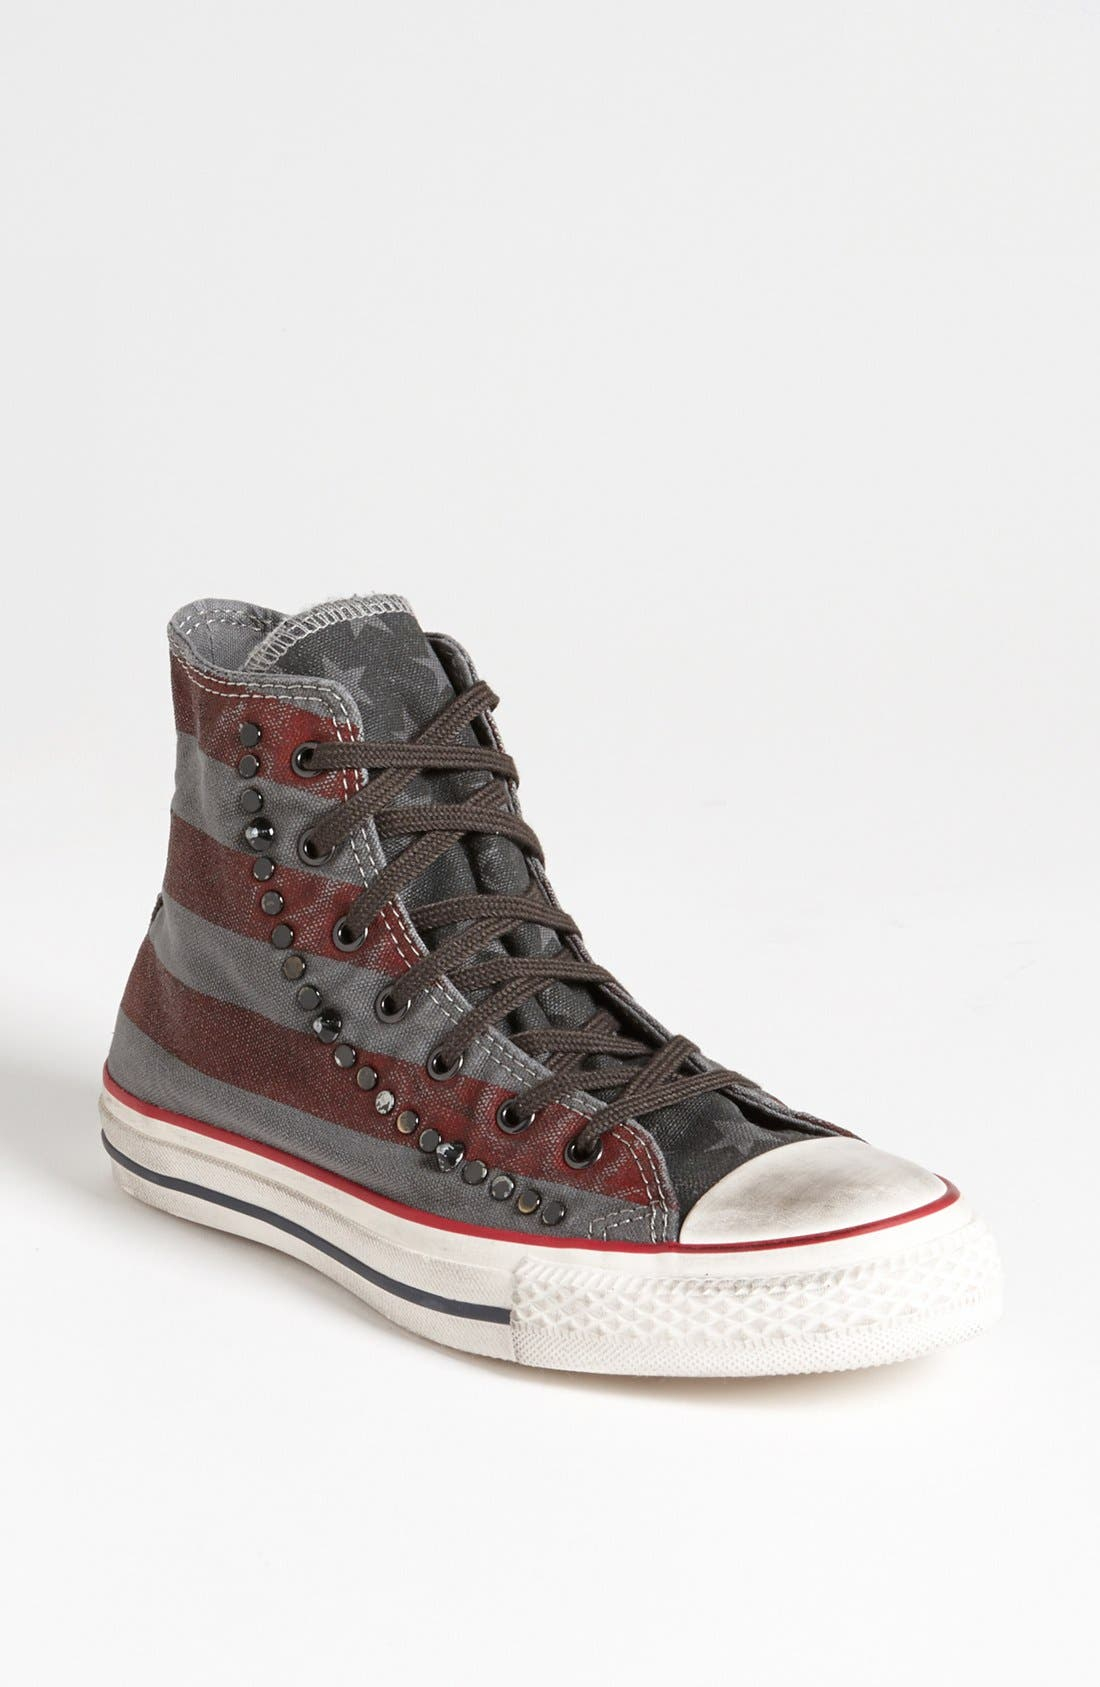 Alternate Image 1 Selected - Converse Chuck Taylor® All Star® 'Stripe and Studs' Sneaker (Women)